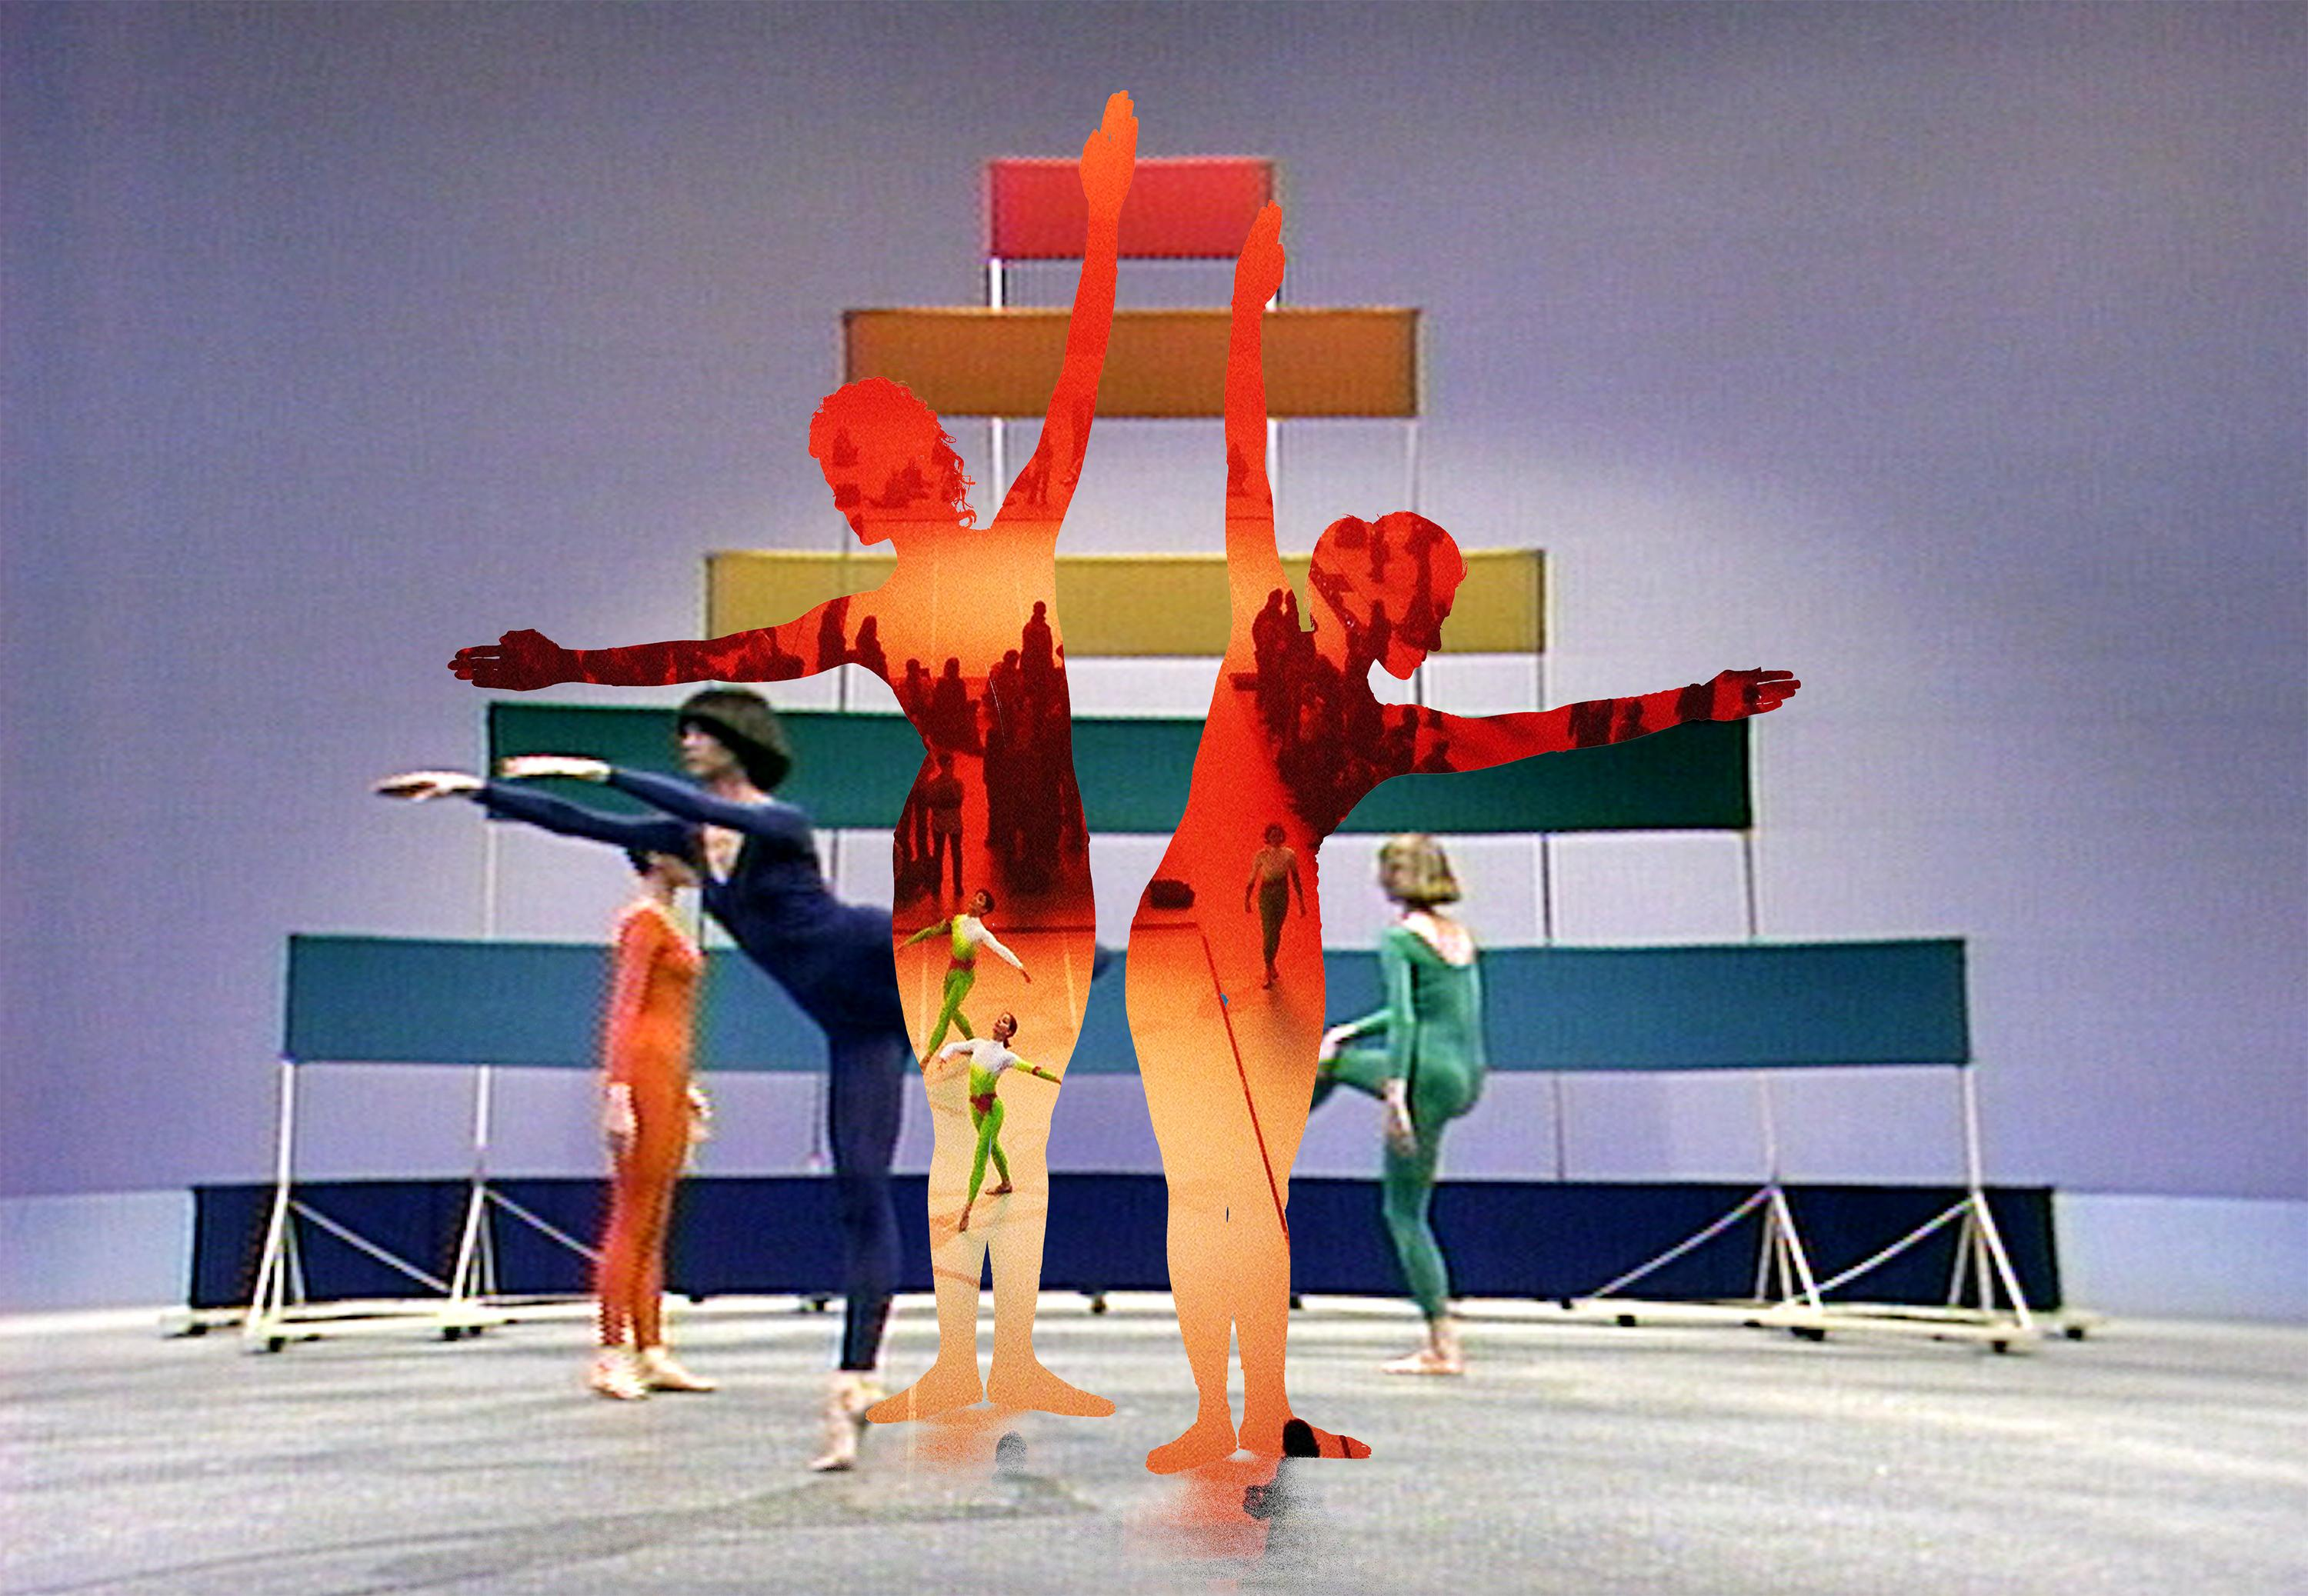 Three dancers in colorful leotards and a triangular structure of colored banners are covered by two dancers' silhouettes that reveal an orange-red room with three dancers and crowds of people.